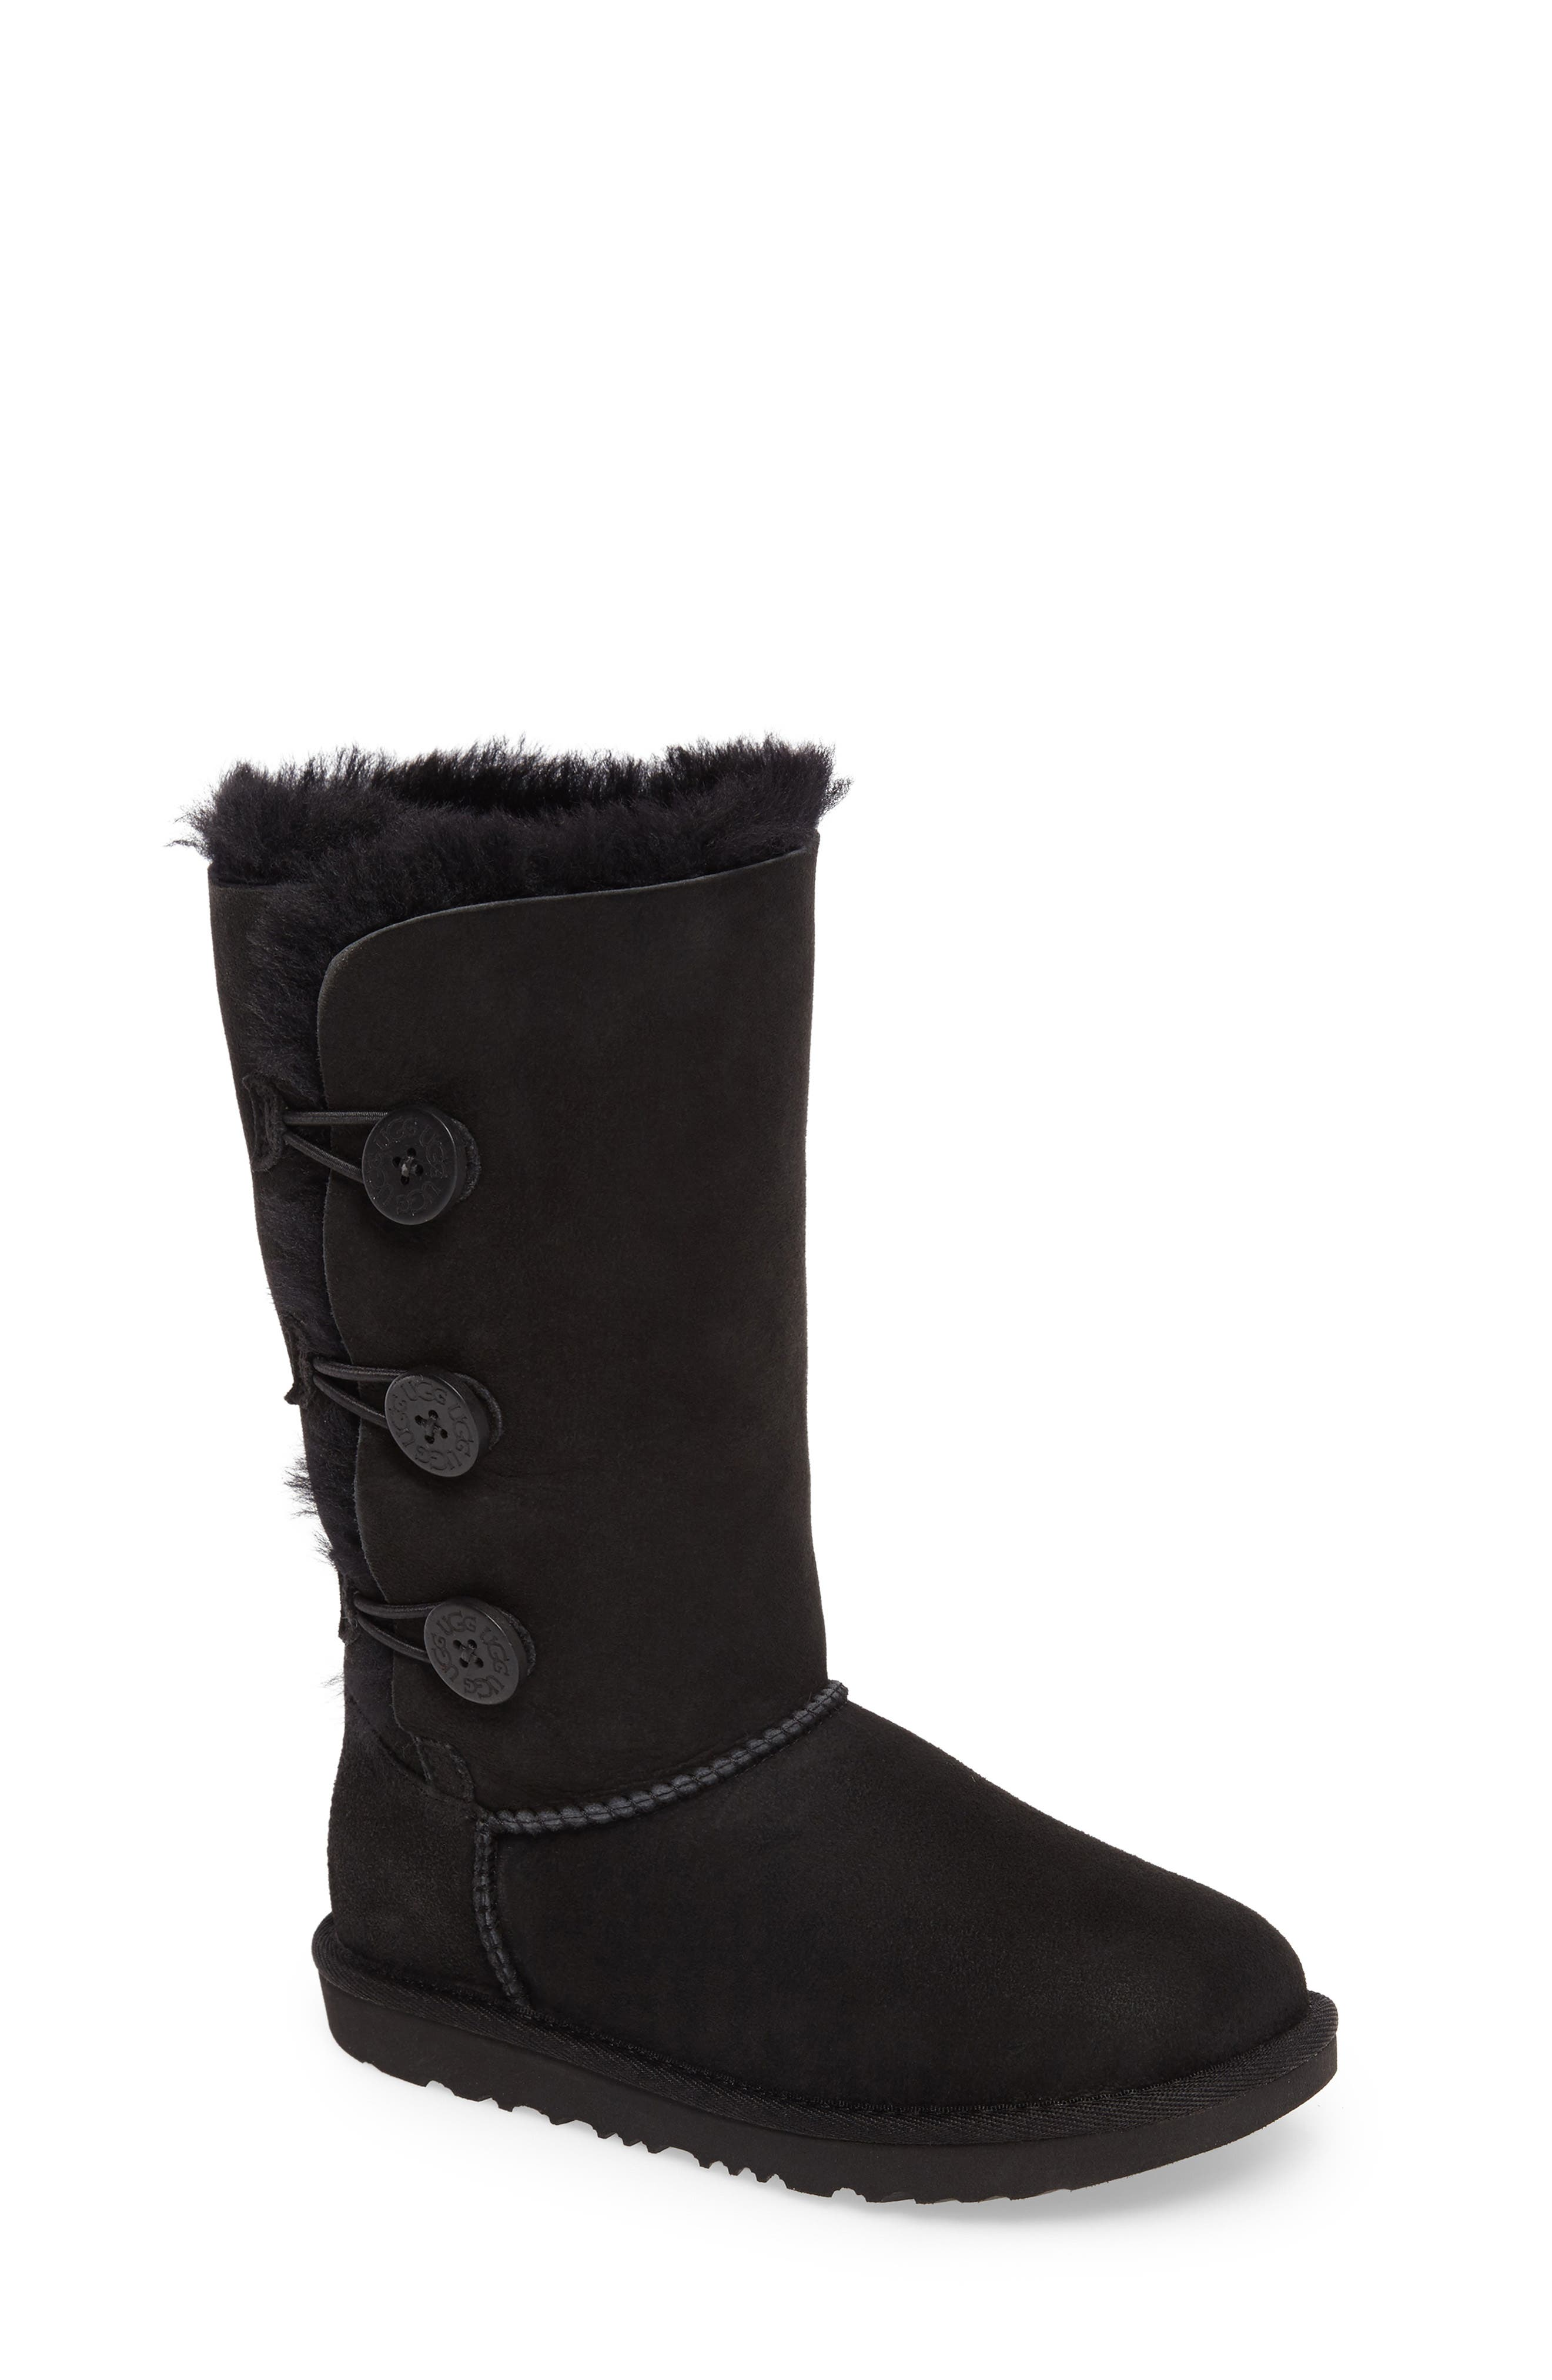 UGG<SUP>®</SUP>, Bailey Button Triplet II Genuine Shearling Boot, Main thumbnail 1, color, BLACK SUEDE